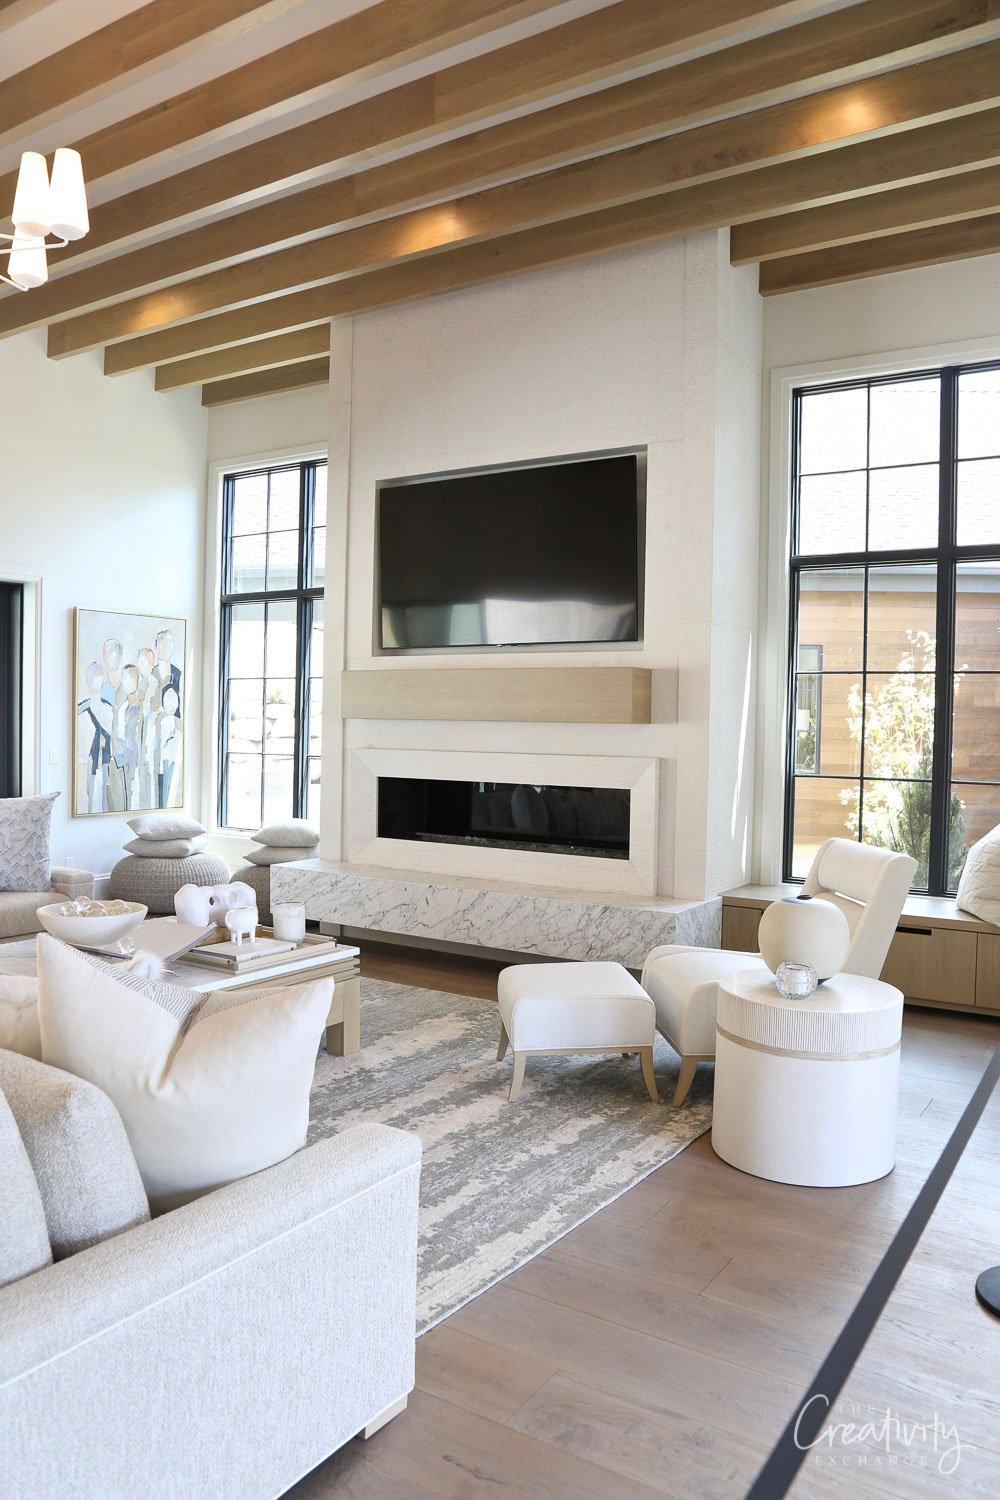 Large open living room with wood beams on ceiling